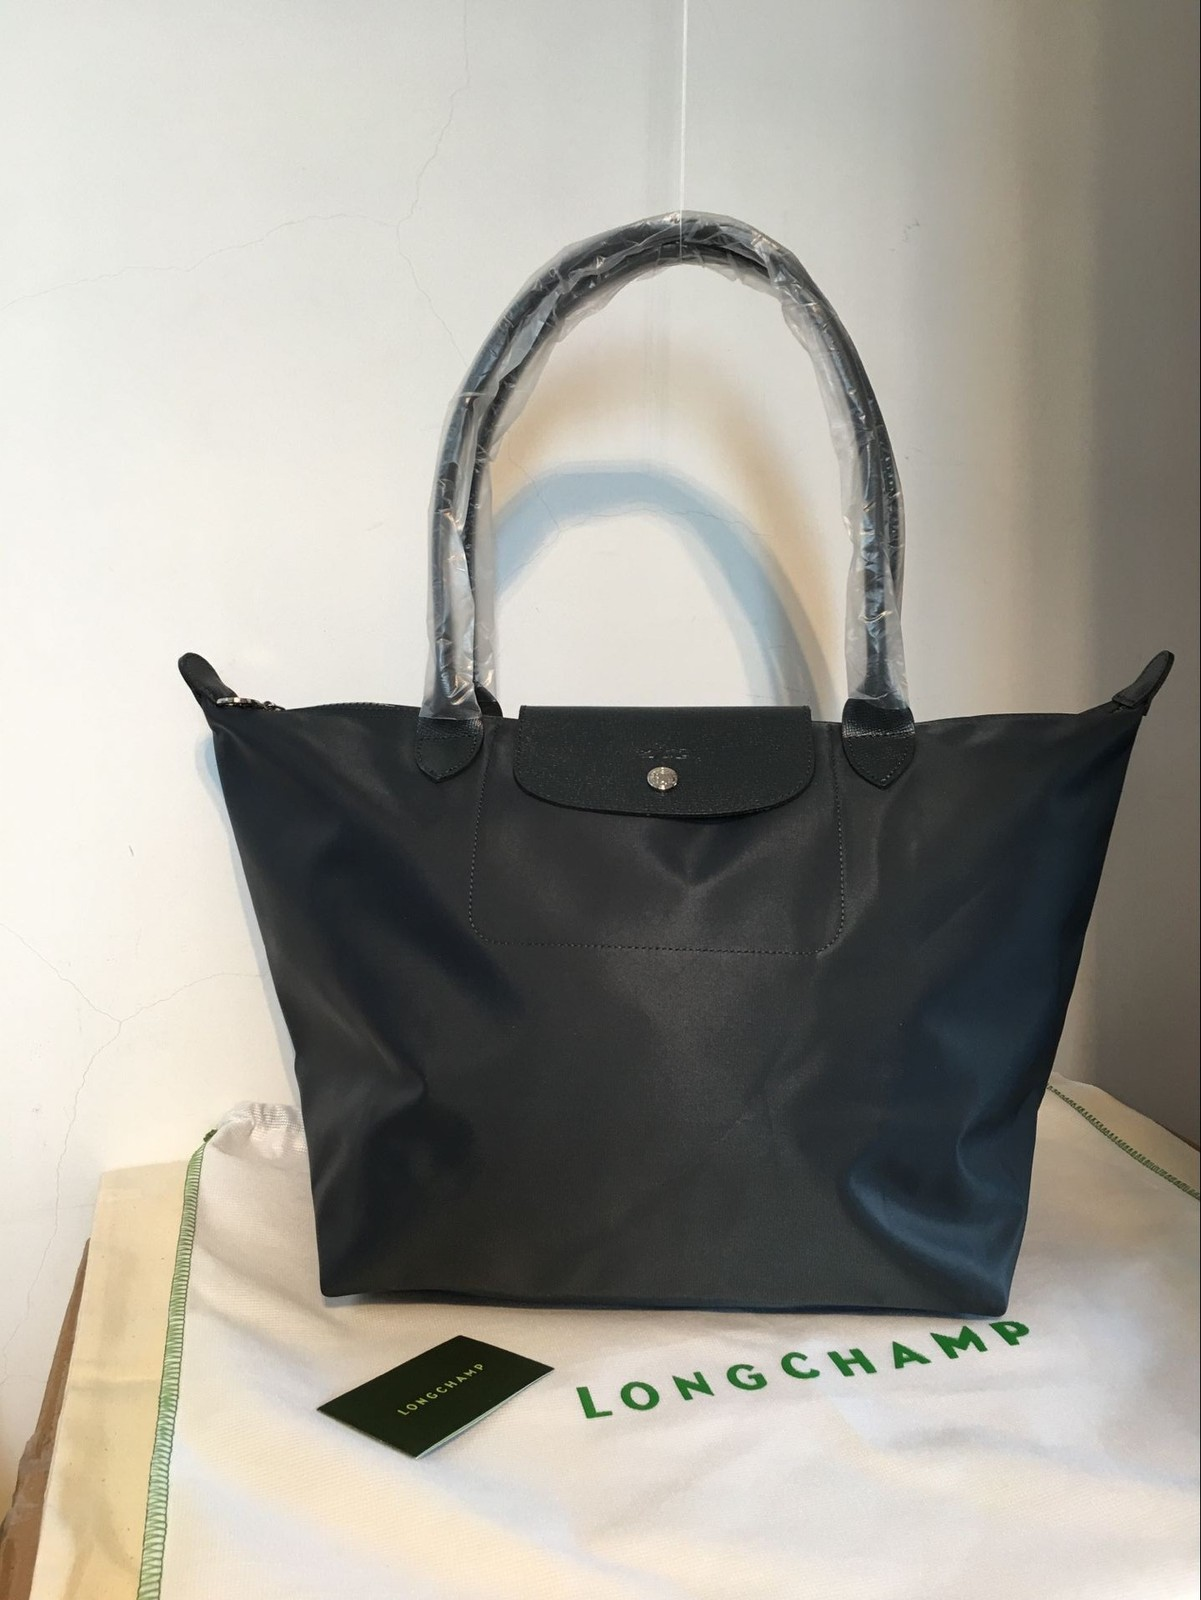 Qq 20170308123942. Qq 20170308123942. Previous. France Made Longchamp Le  Pliage Neo Large Tote Bag Graphite 1899578897 Authentic f488a48d17379